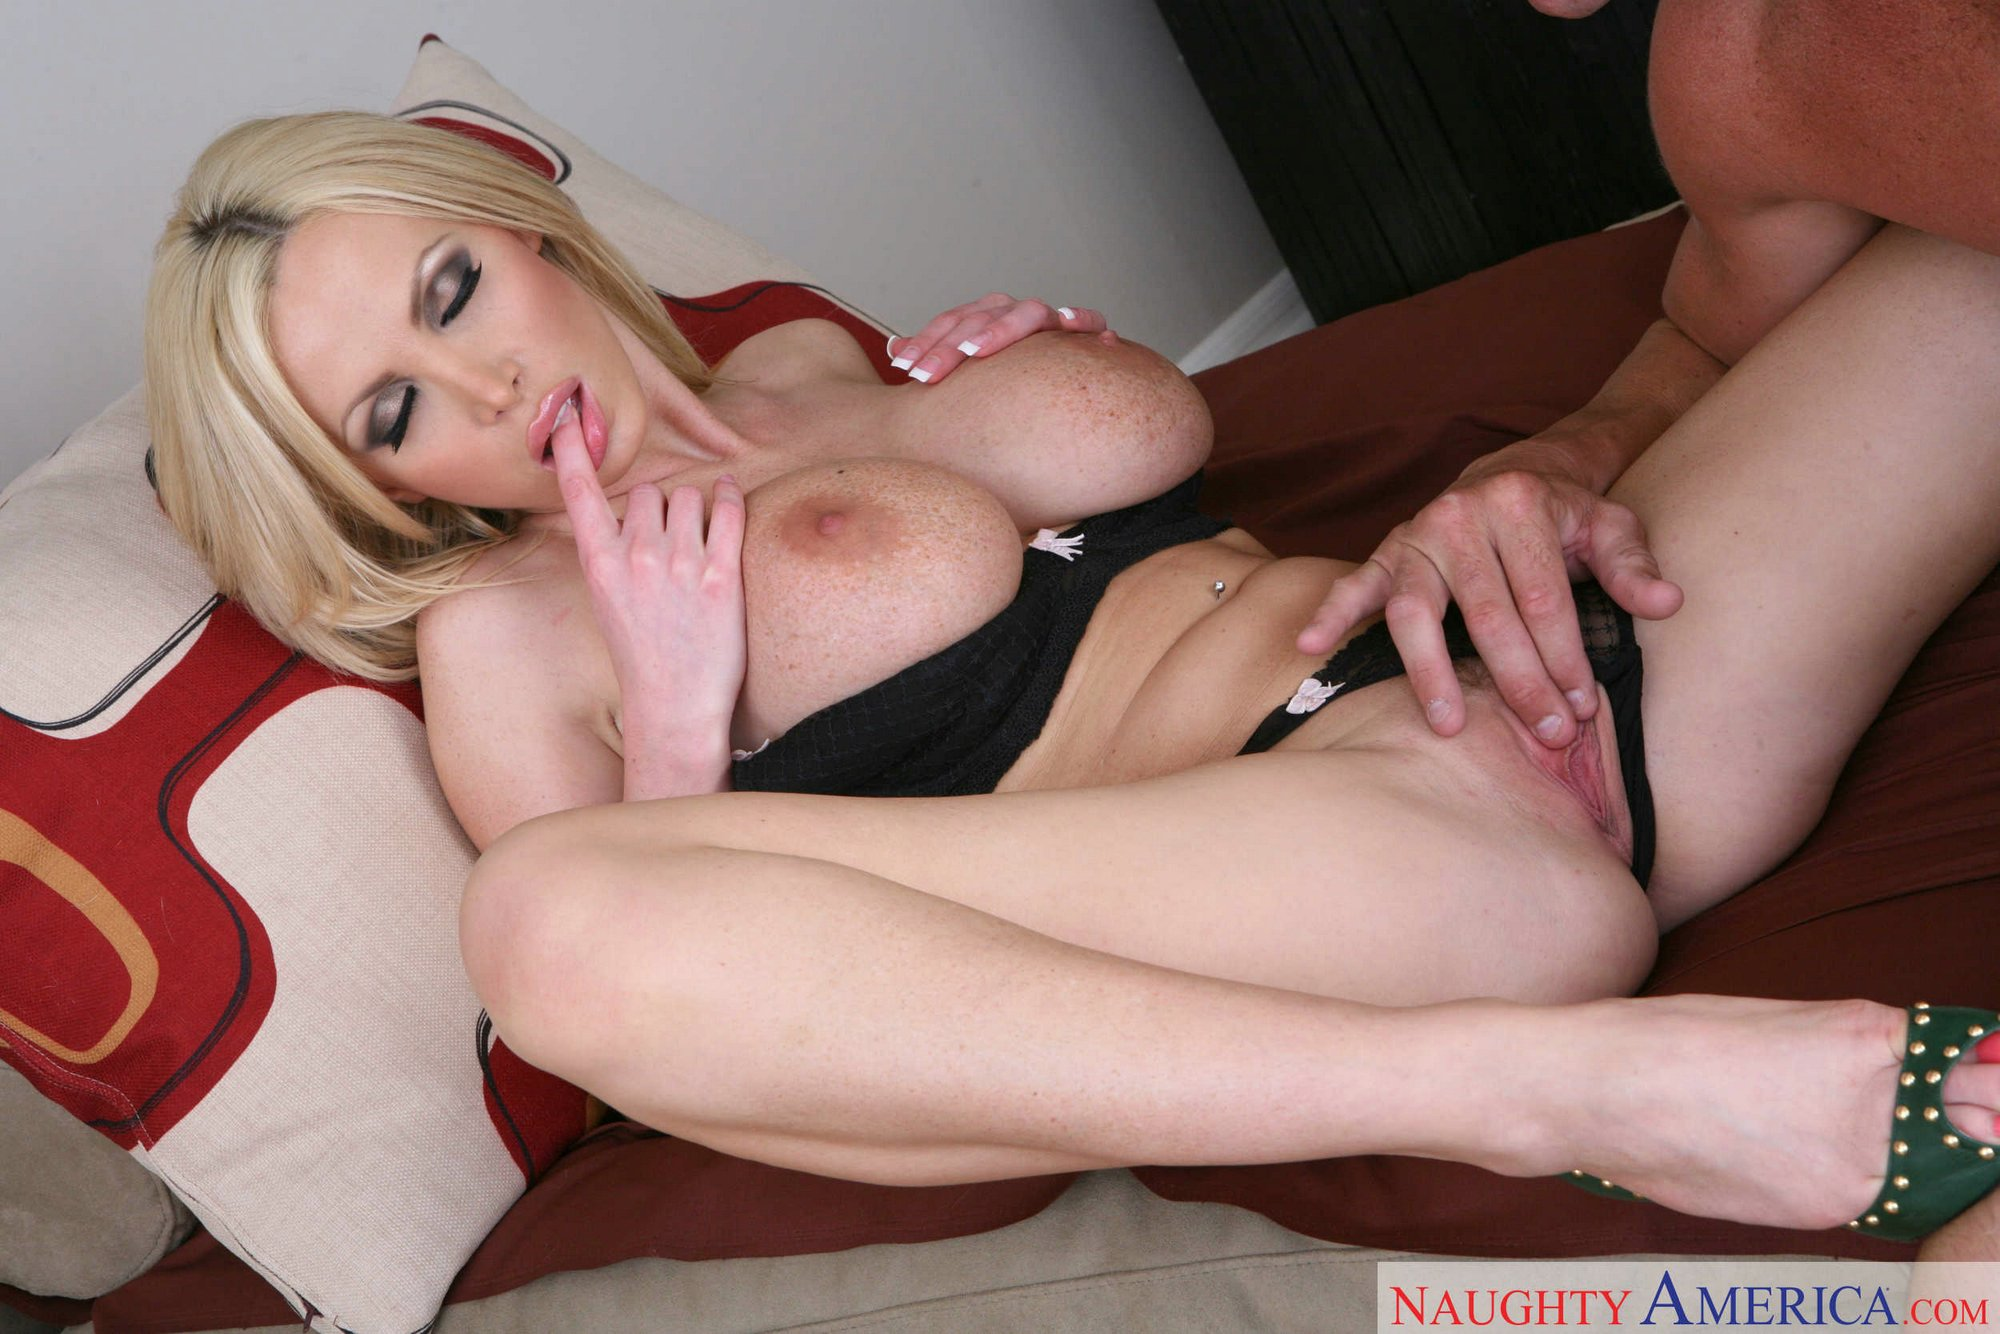 mother teaching daughter nude